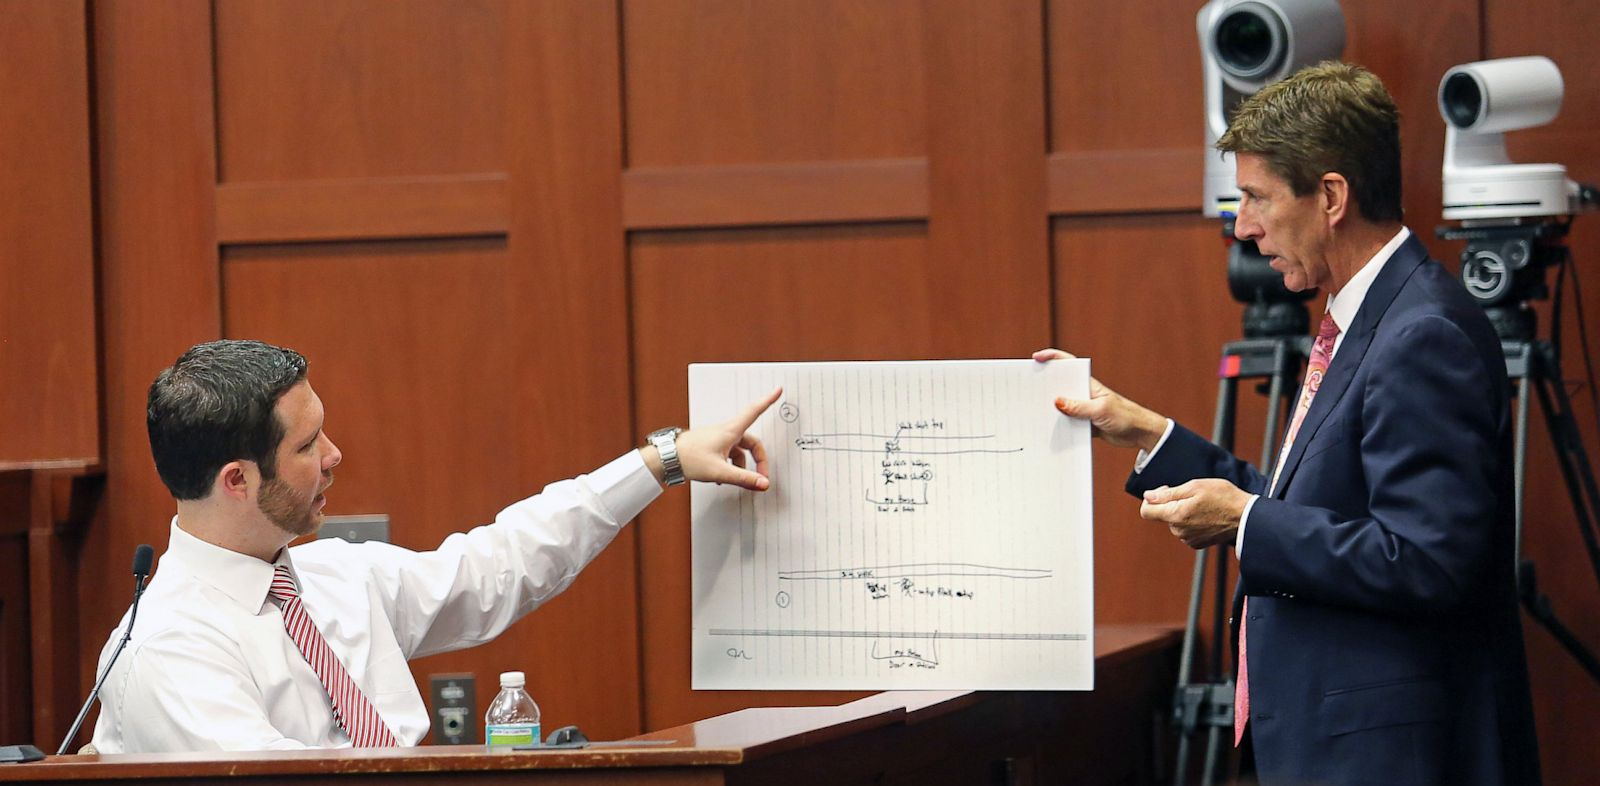 PHOTO: Jonathan Good on stand in Zimmerman trial